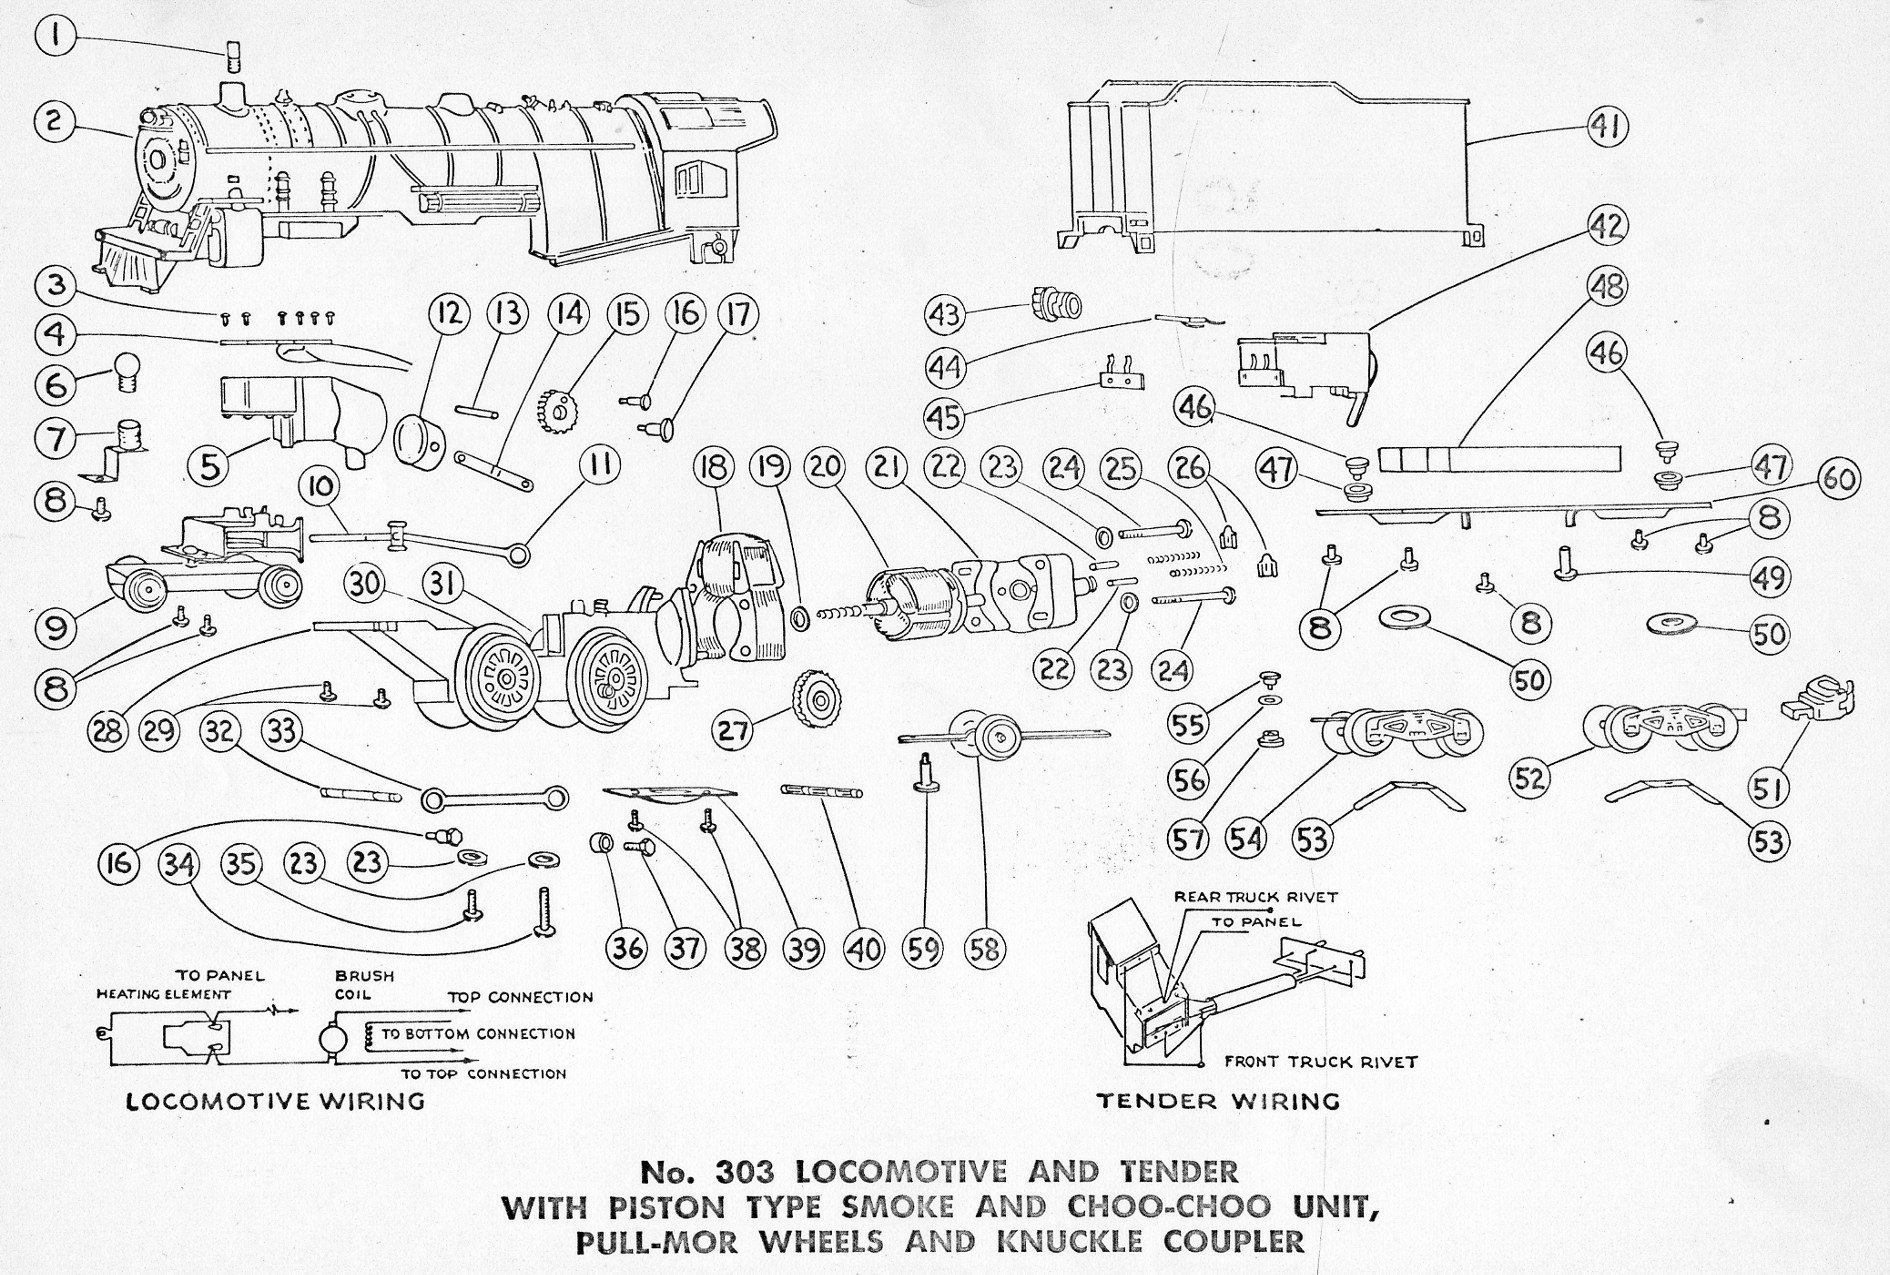 American Flyer Locomotive 308 Parts List Amp Diagram